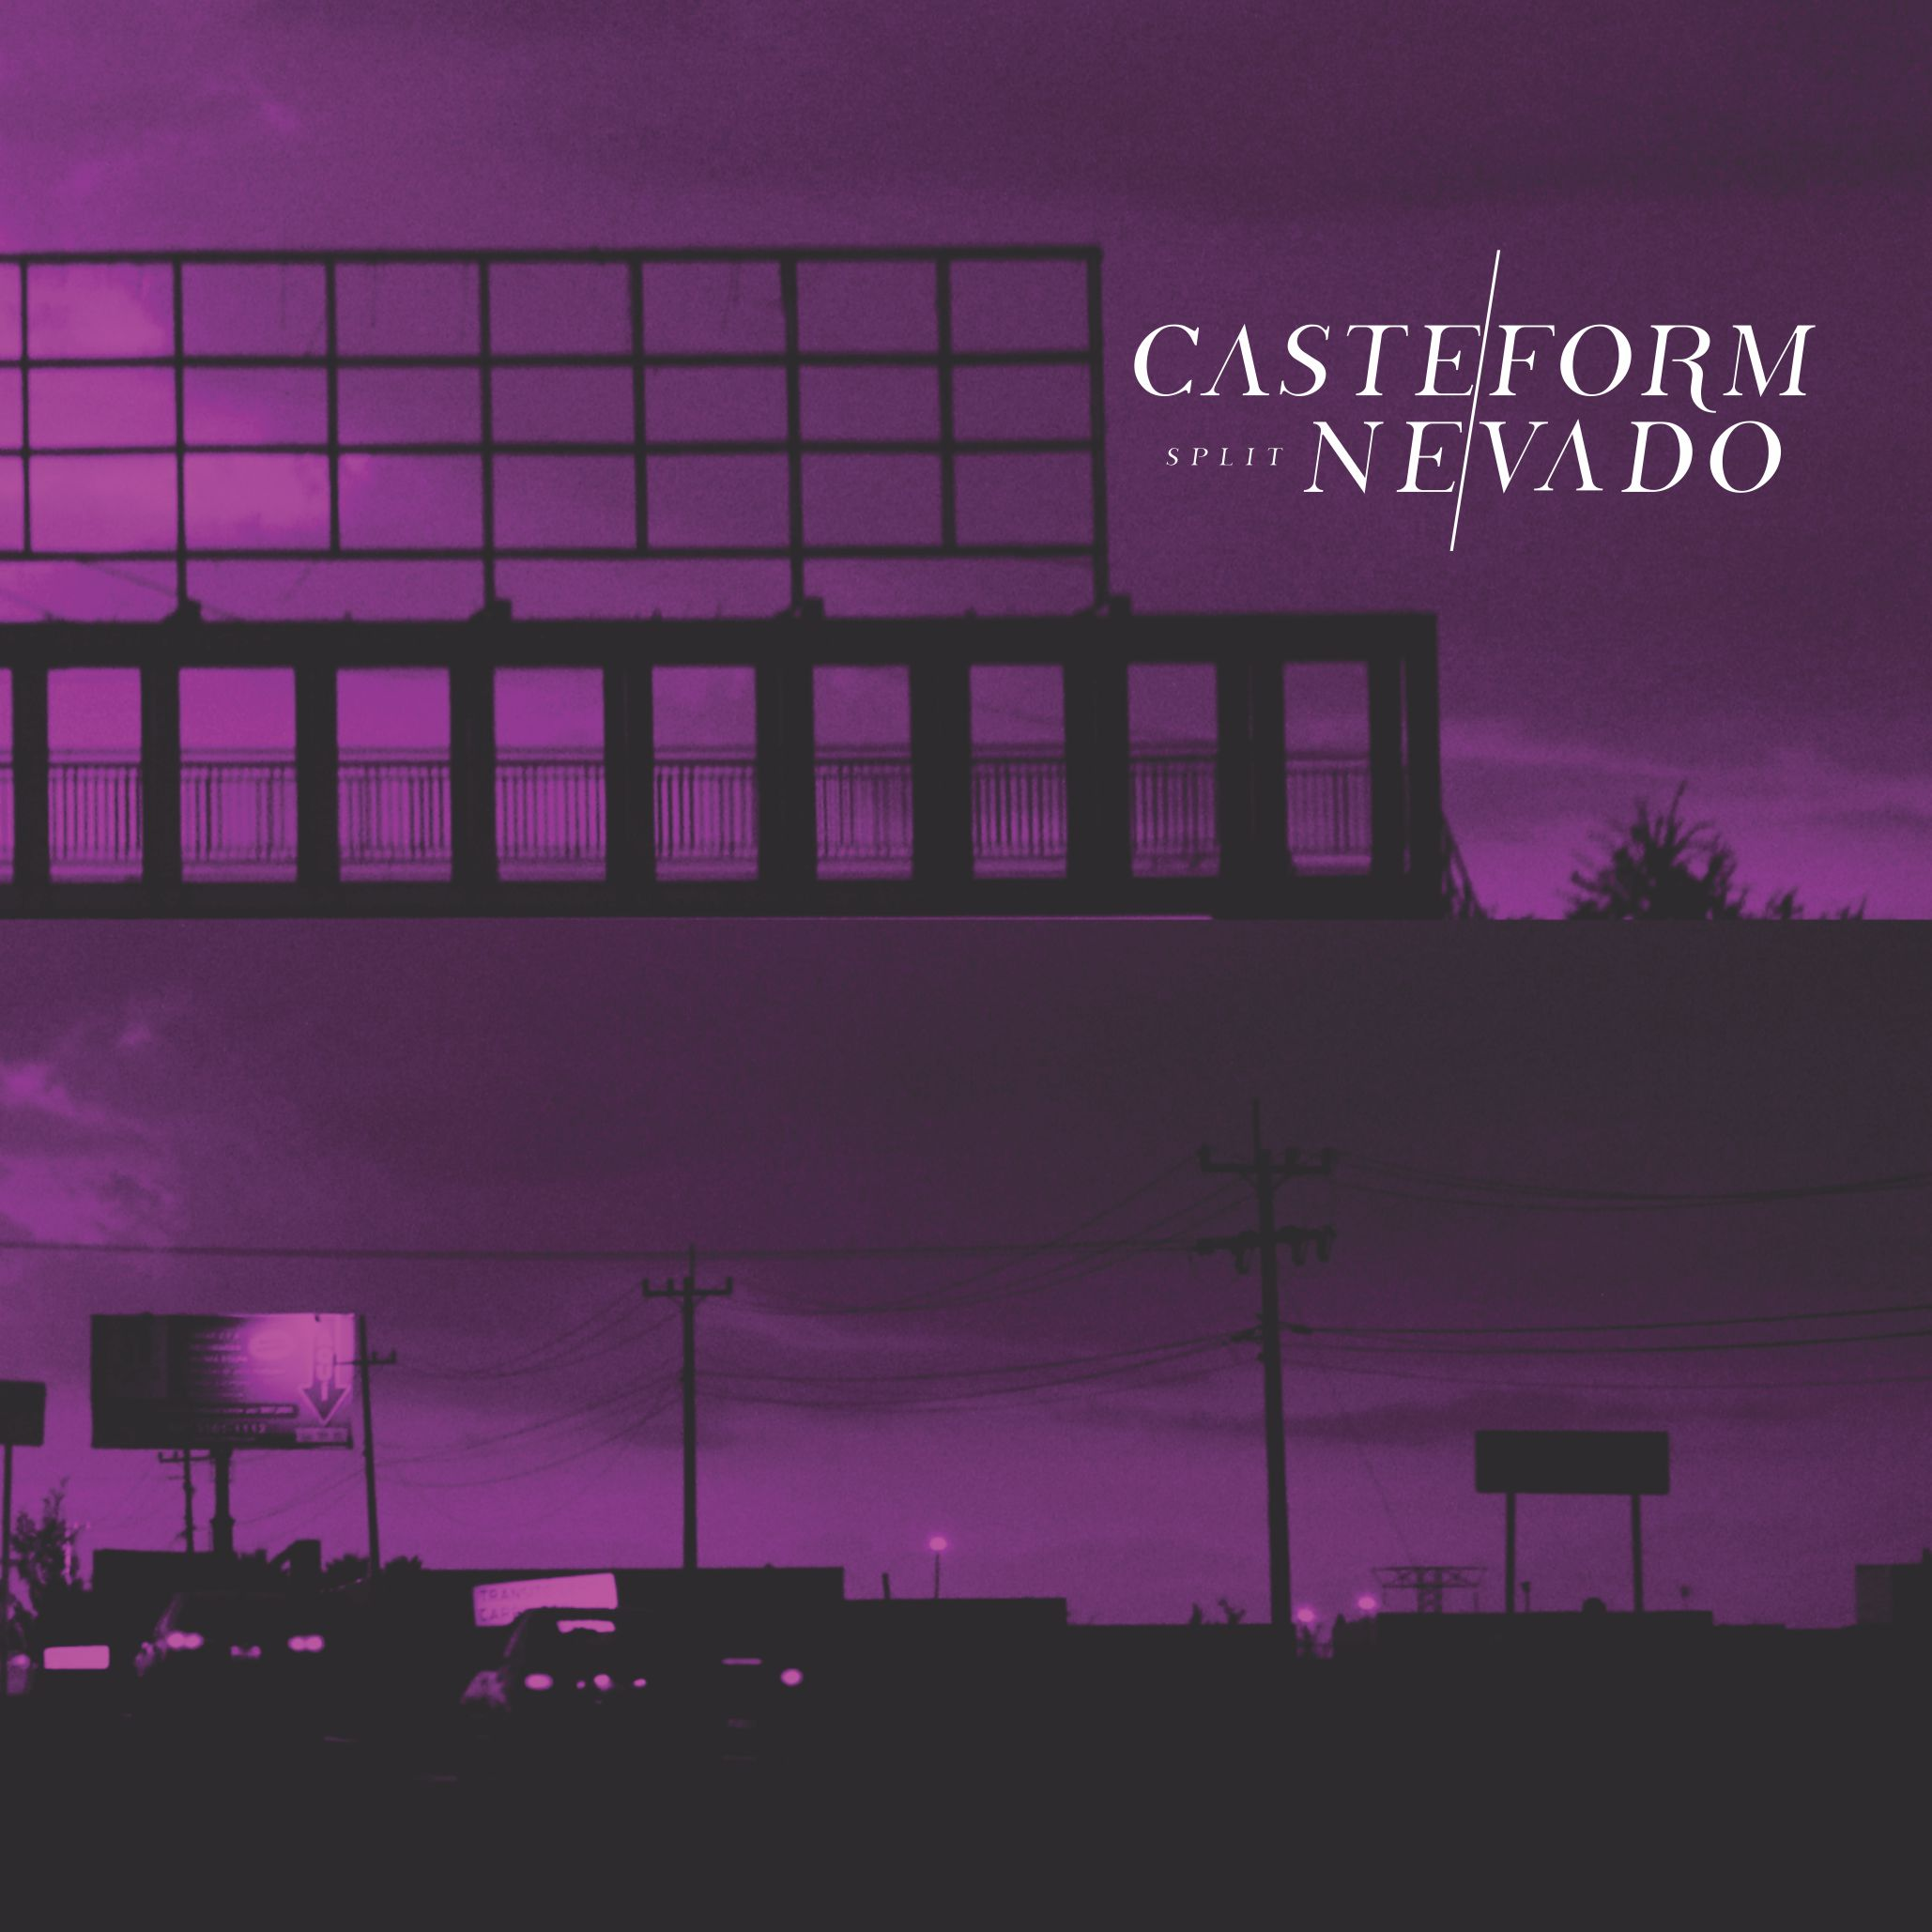 Casteform/Nevado Split (Cassette/CD)